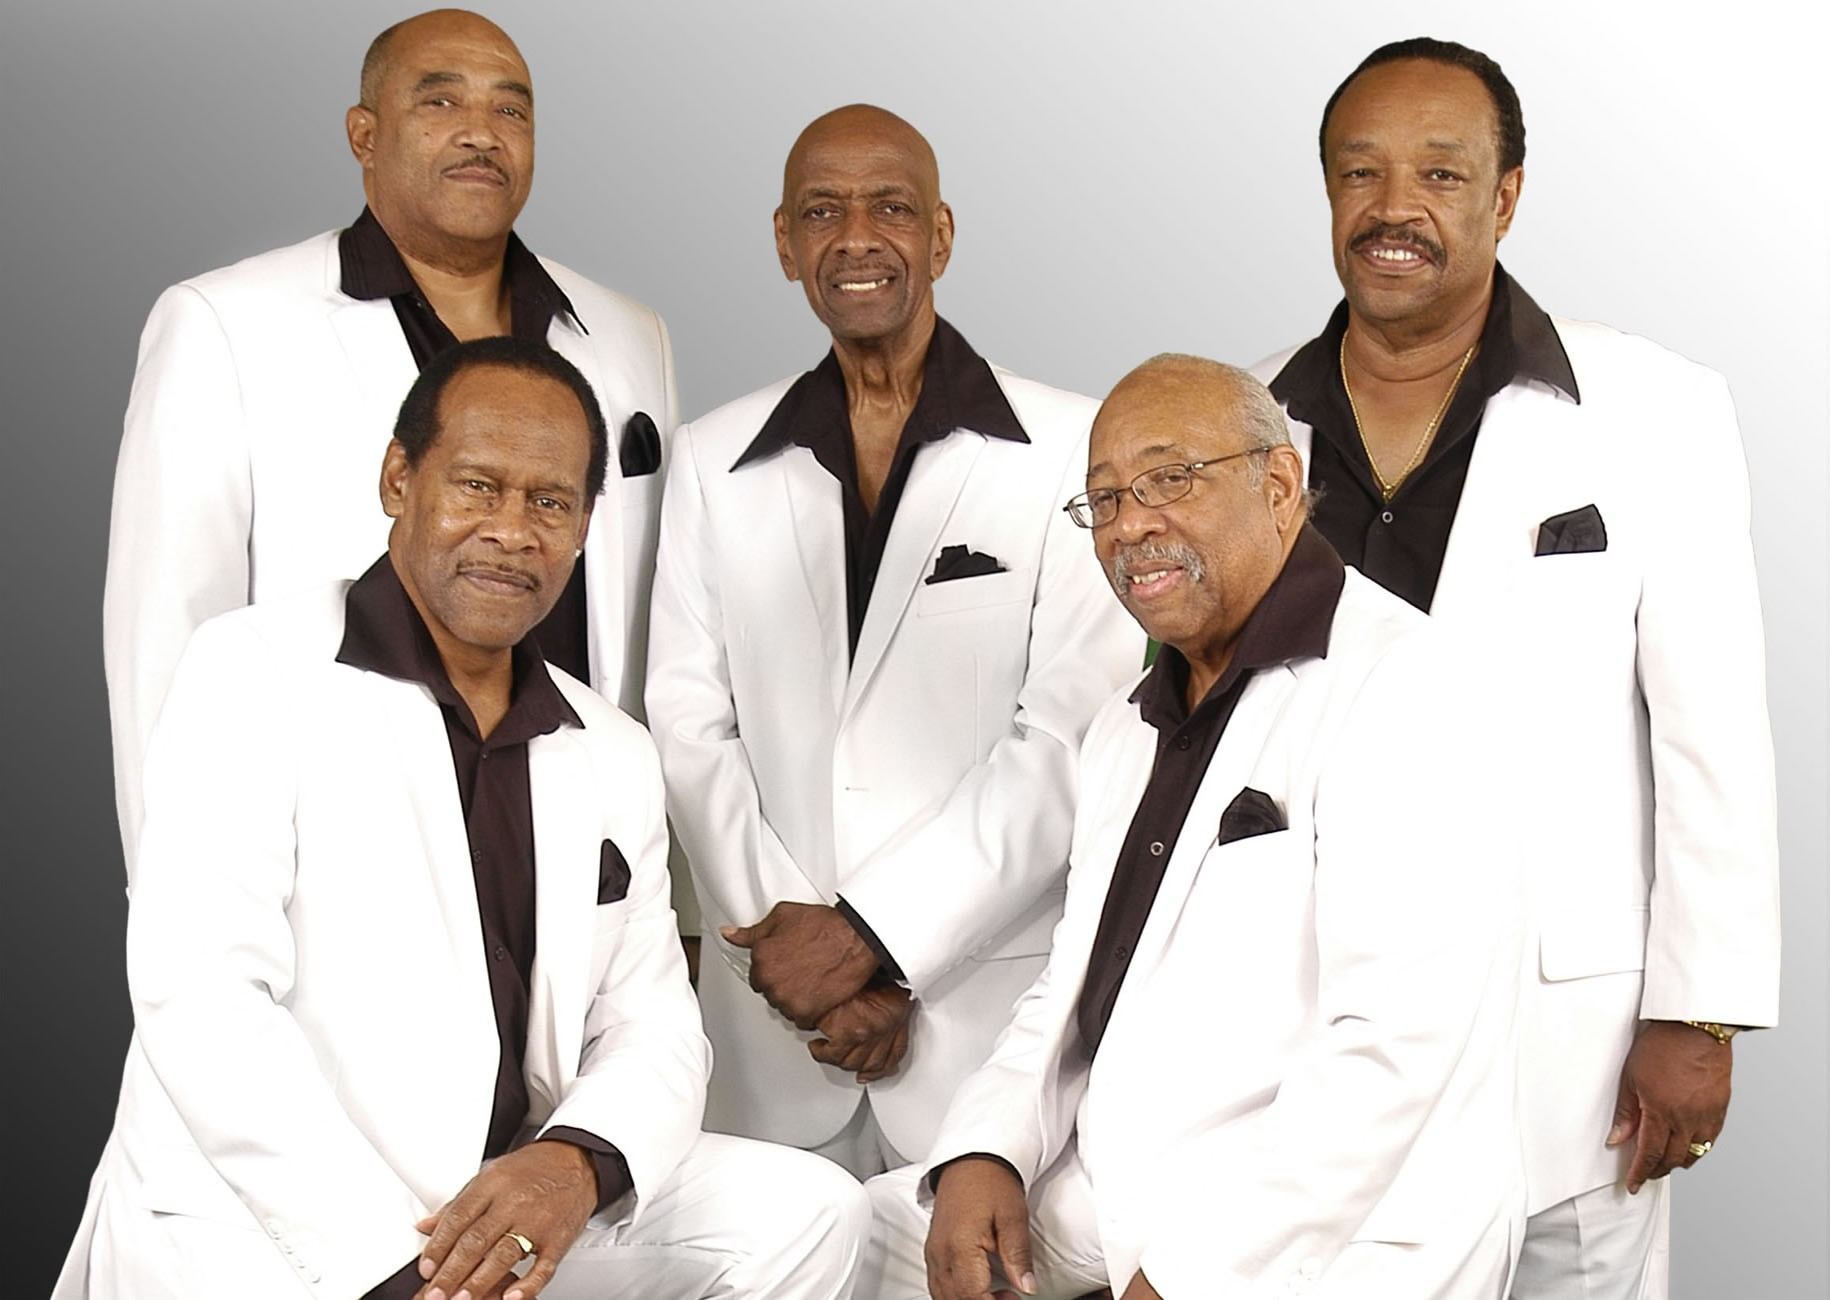 Those attending the Area Office on Aging's Senior Safari event at the Toledo Zoo's Malawi Event Center will enjoy a concert by Motown's The Contours. (Submitted photo)